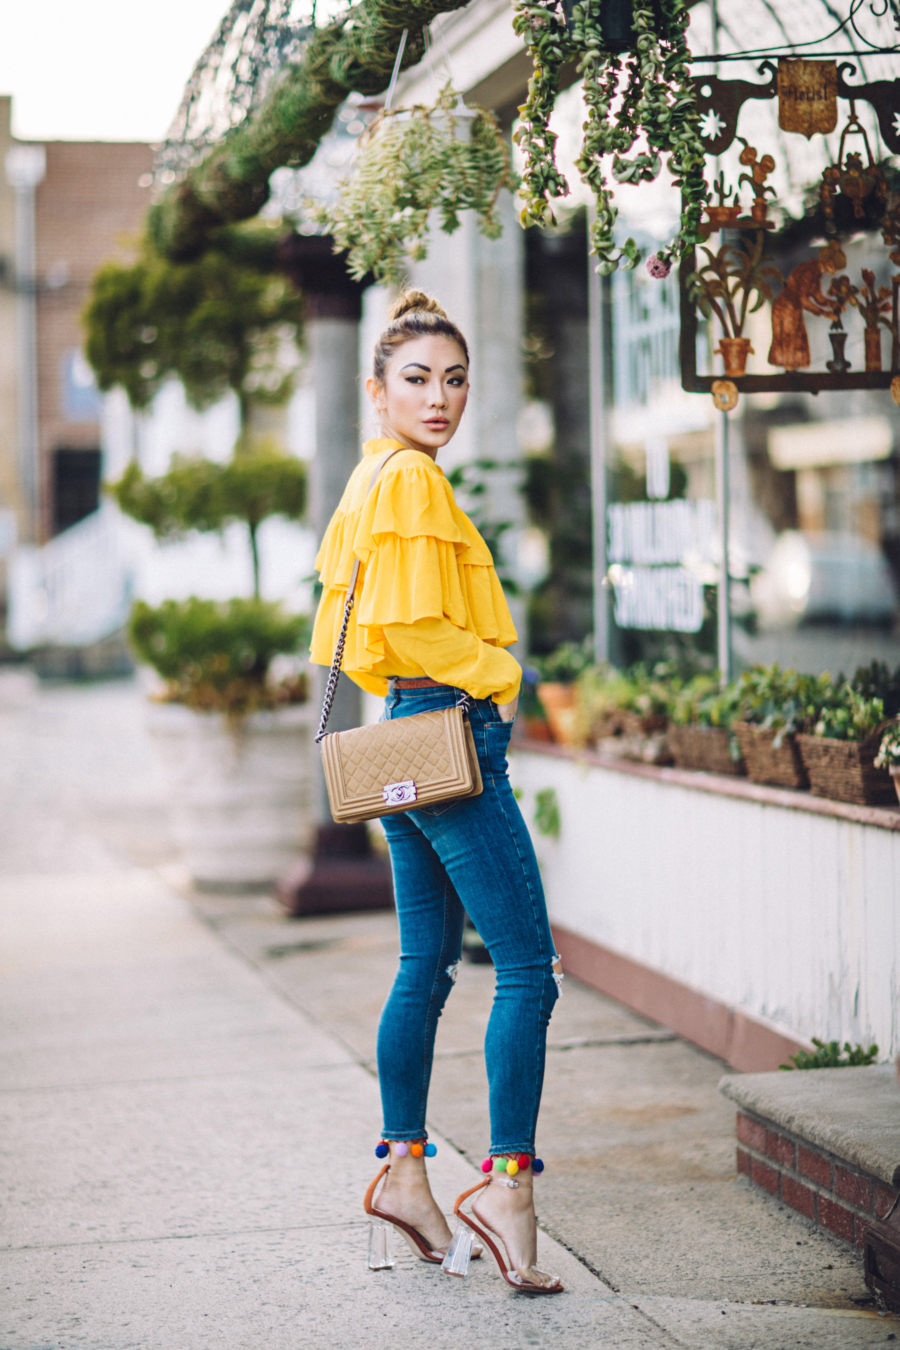 Chanel Boy - 9 Designer Handbags That Are Totally Worth The Investment // NotJessFashion.com